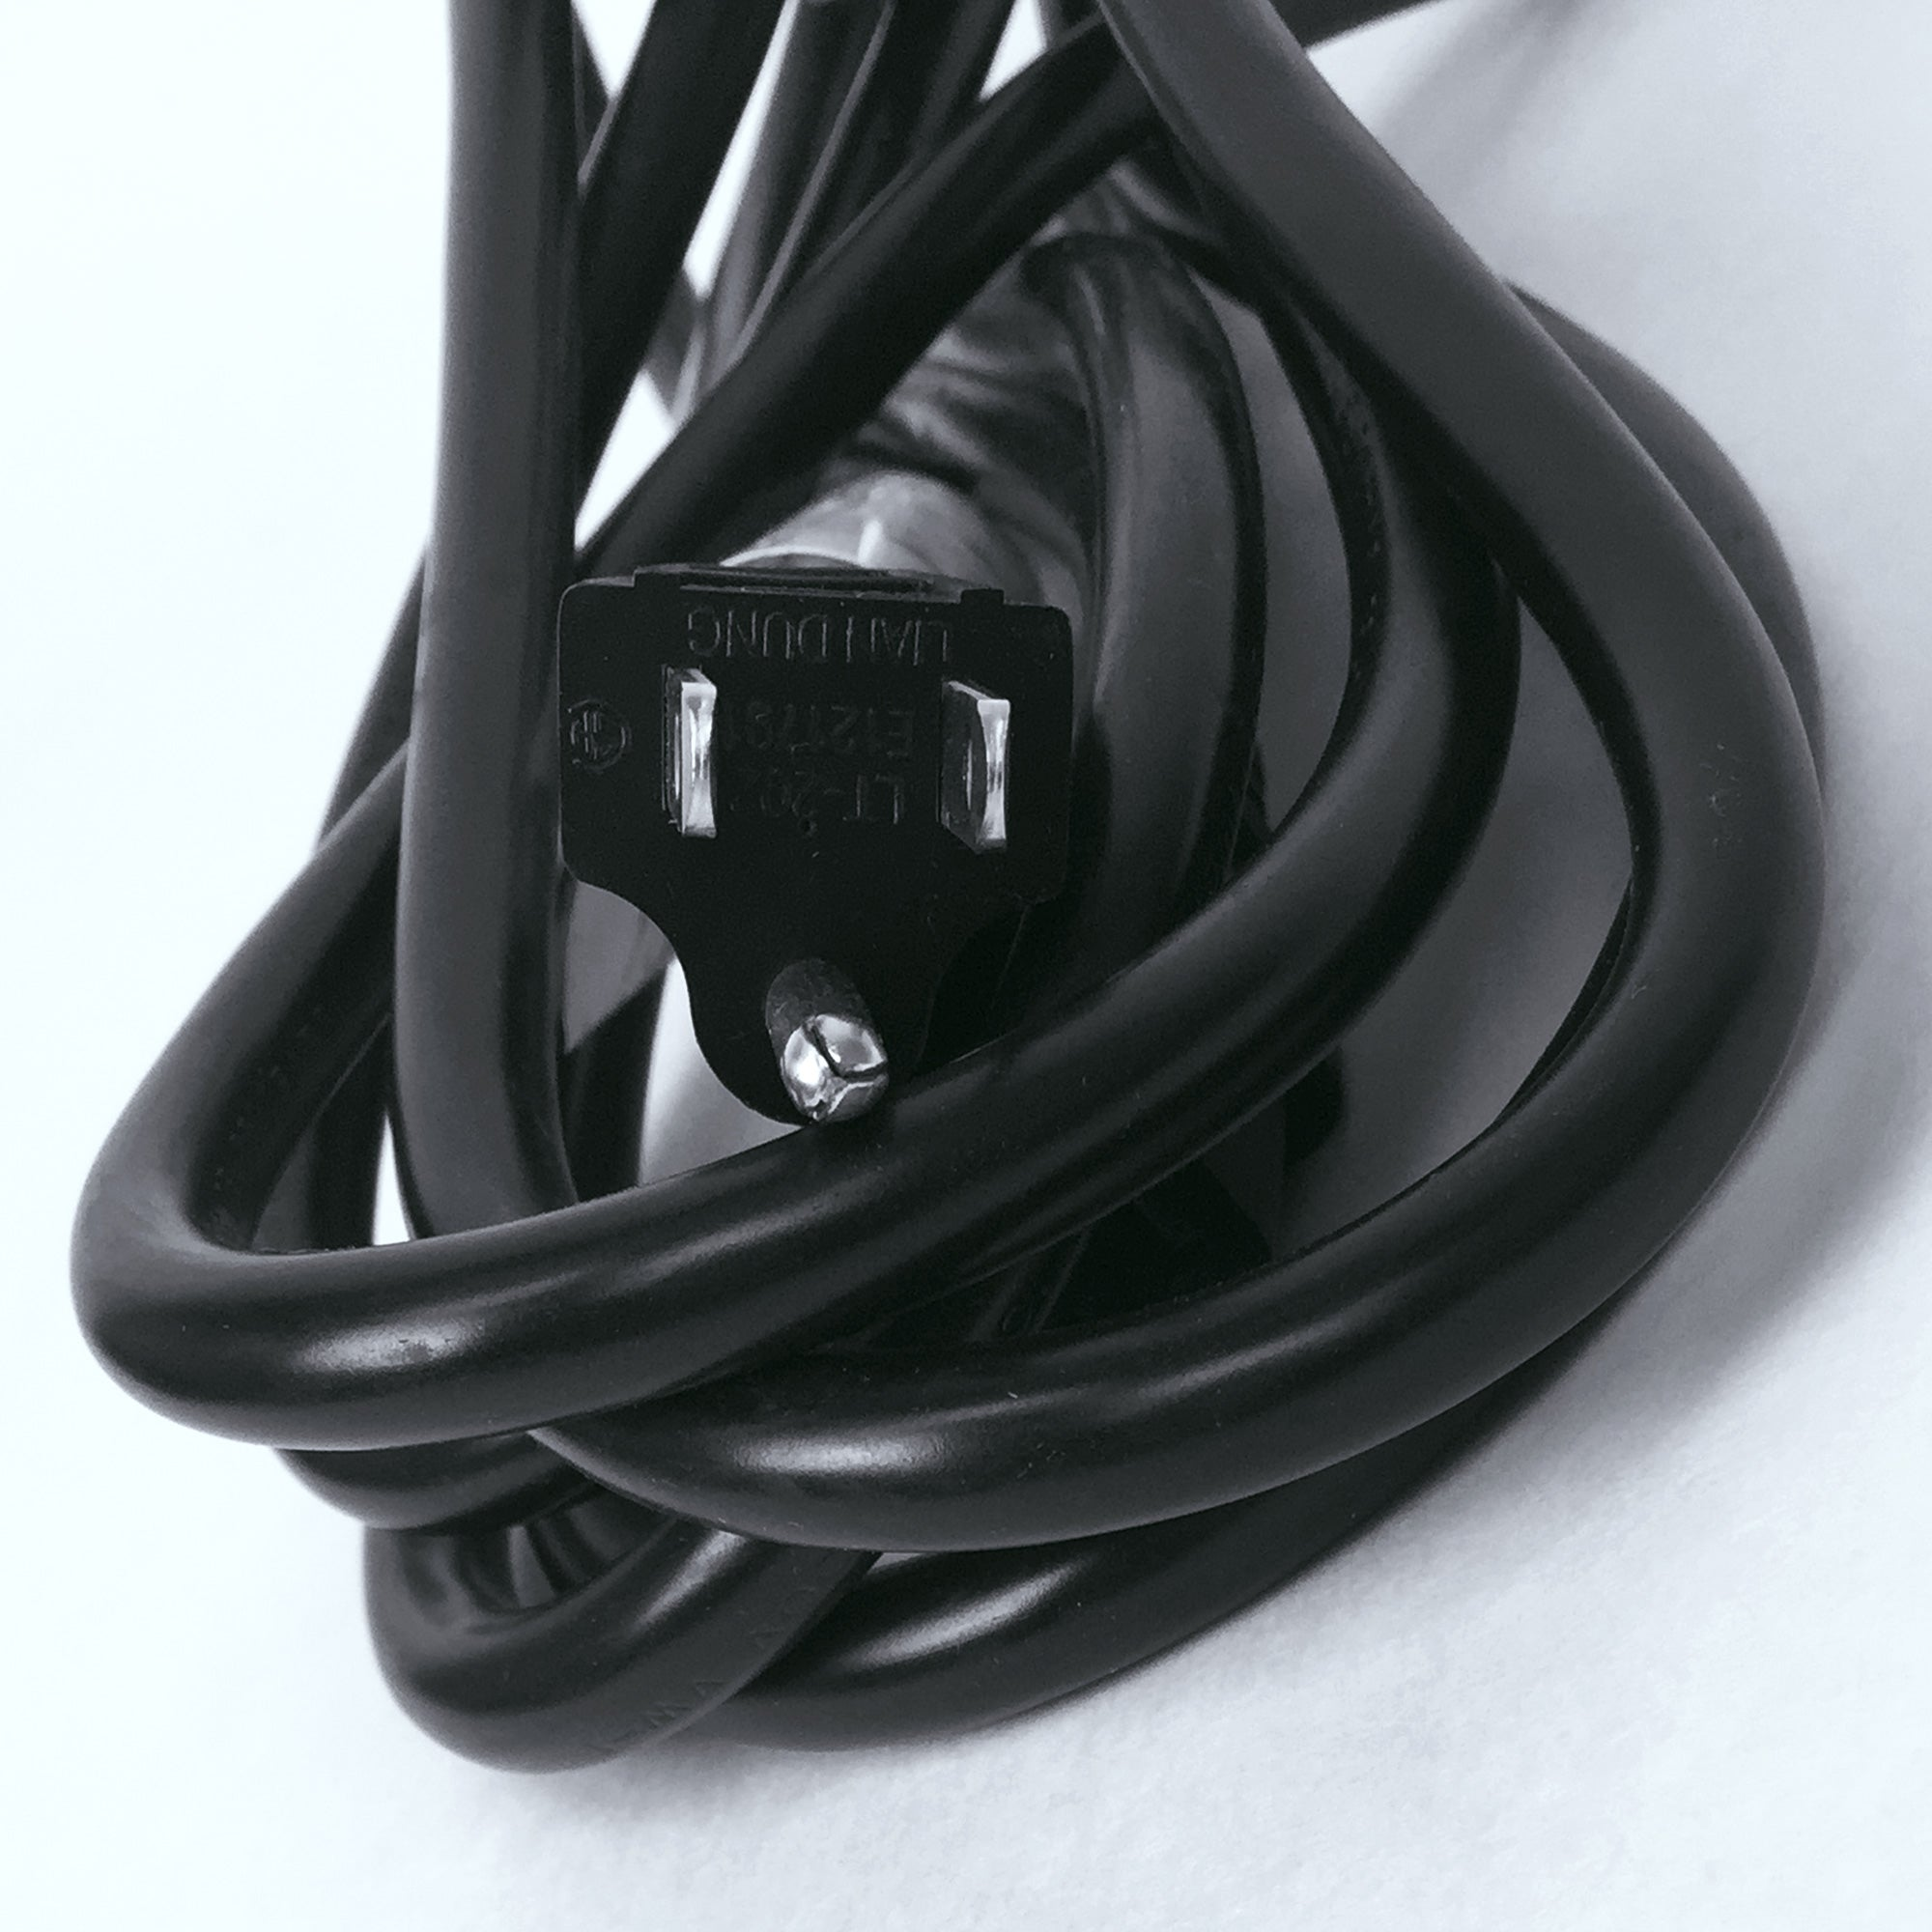 12 FT 15A POWER CORD